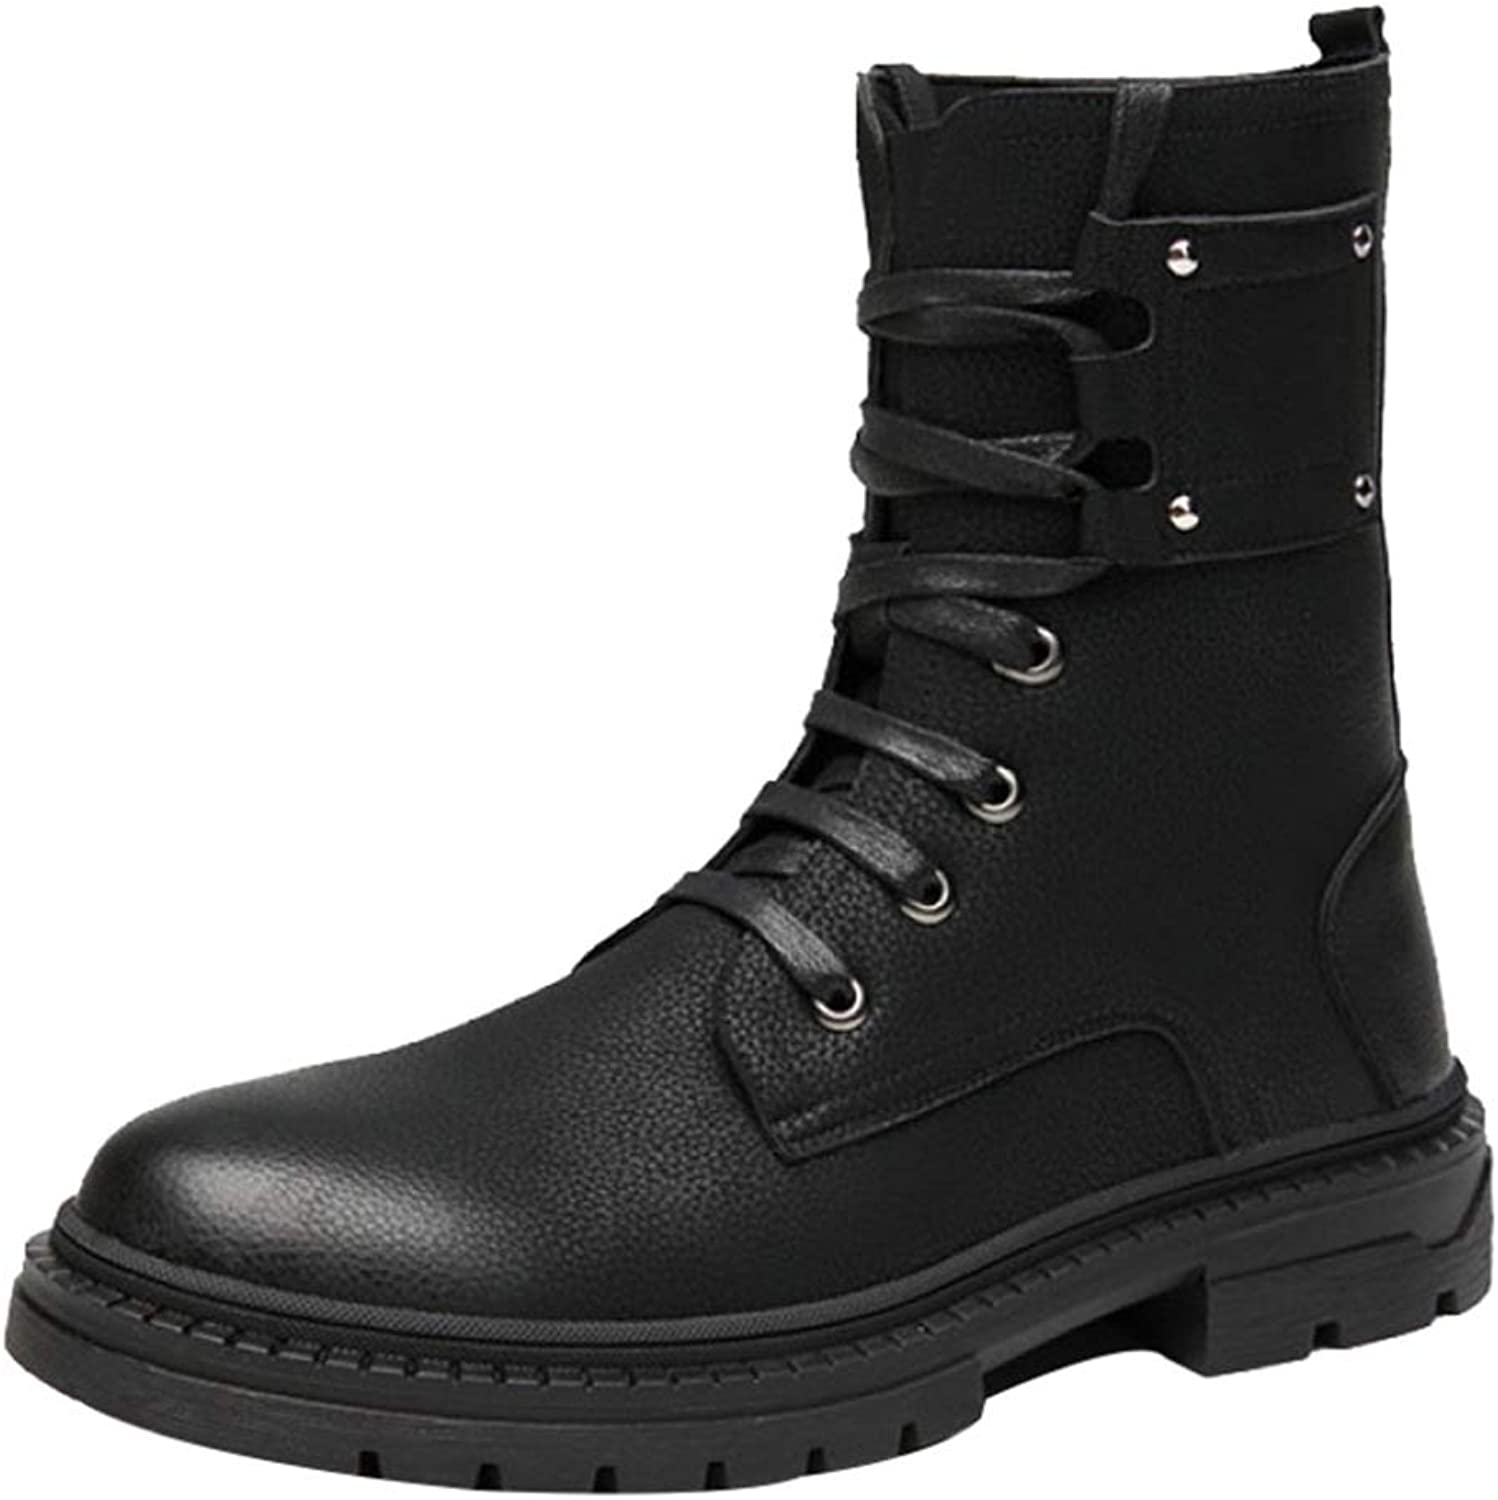 Men's Martin shoes Long Riding Boots Casual Tall Leather Boots Winter Outdoor Fashion shoes